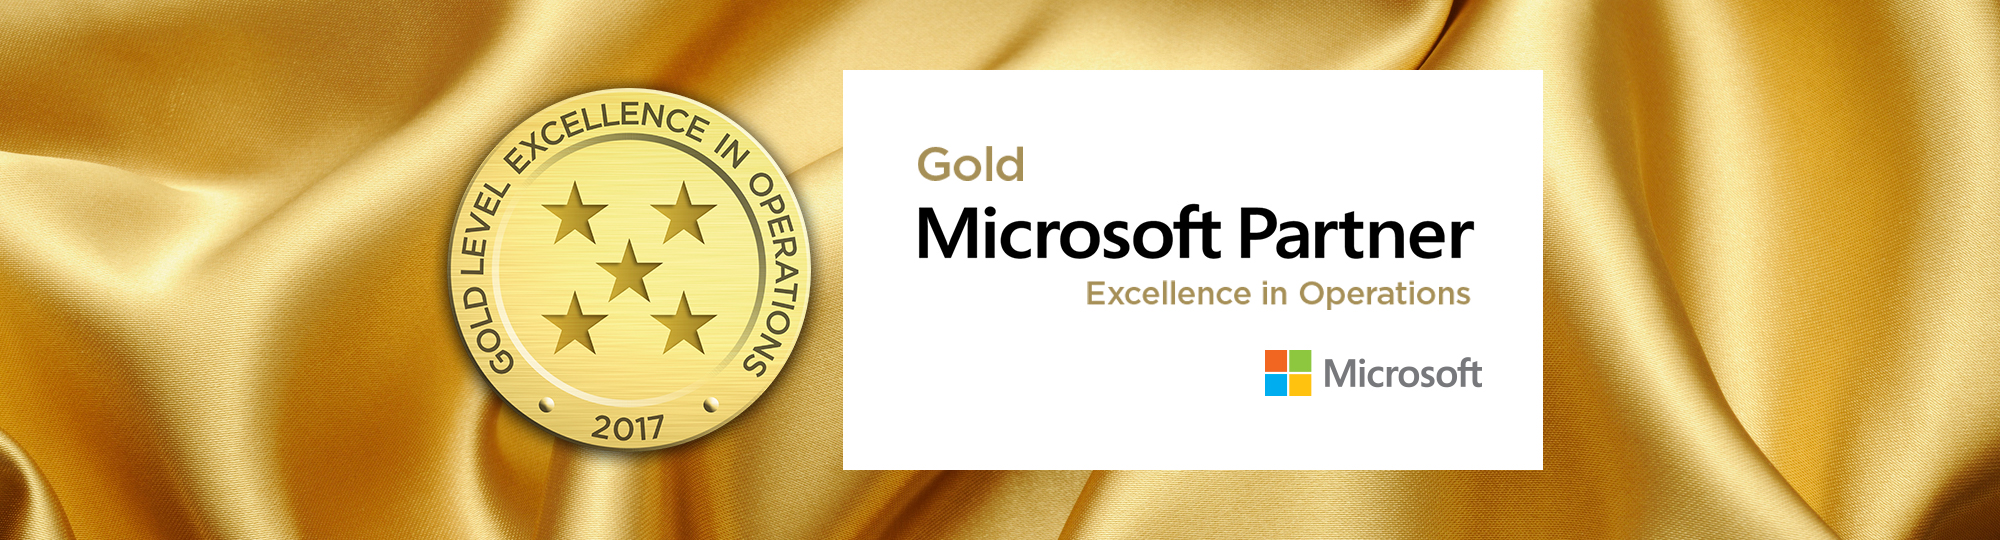 Microsoft Excellence in Operations Award